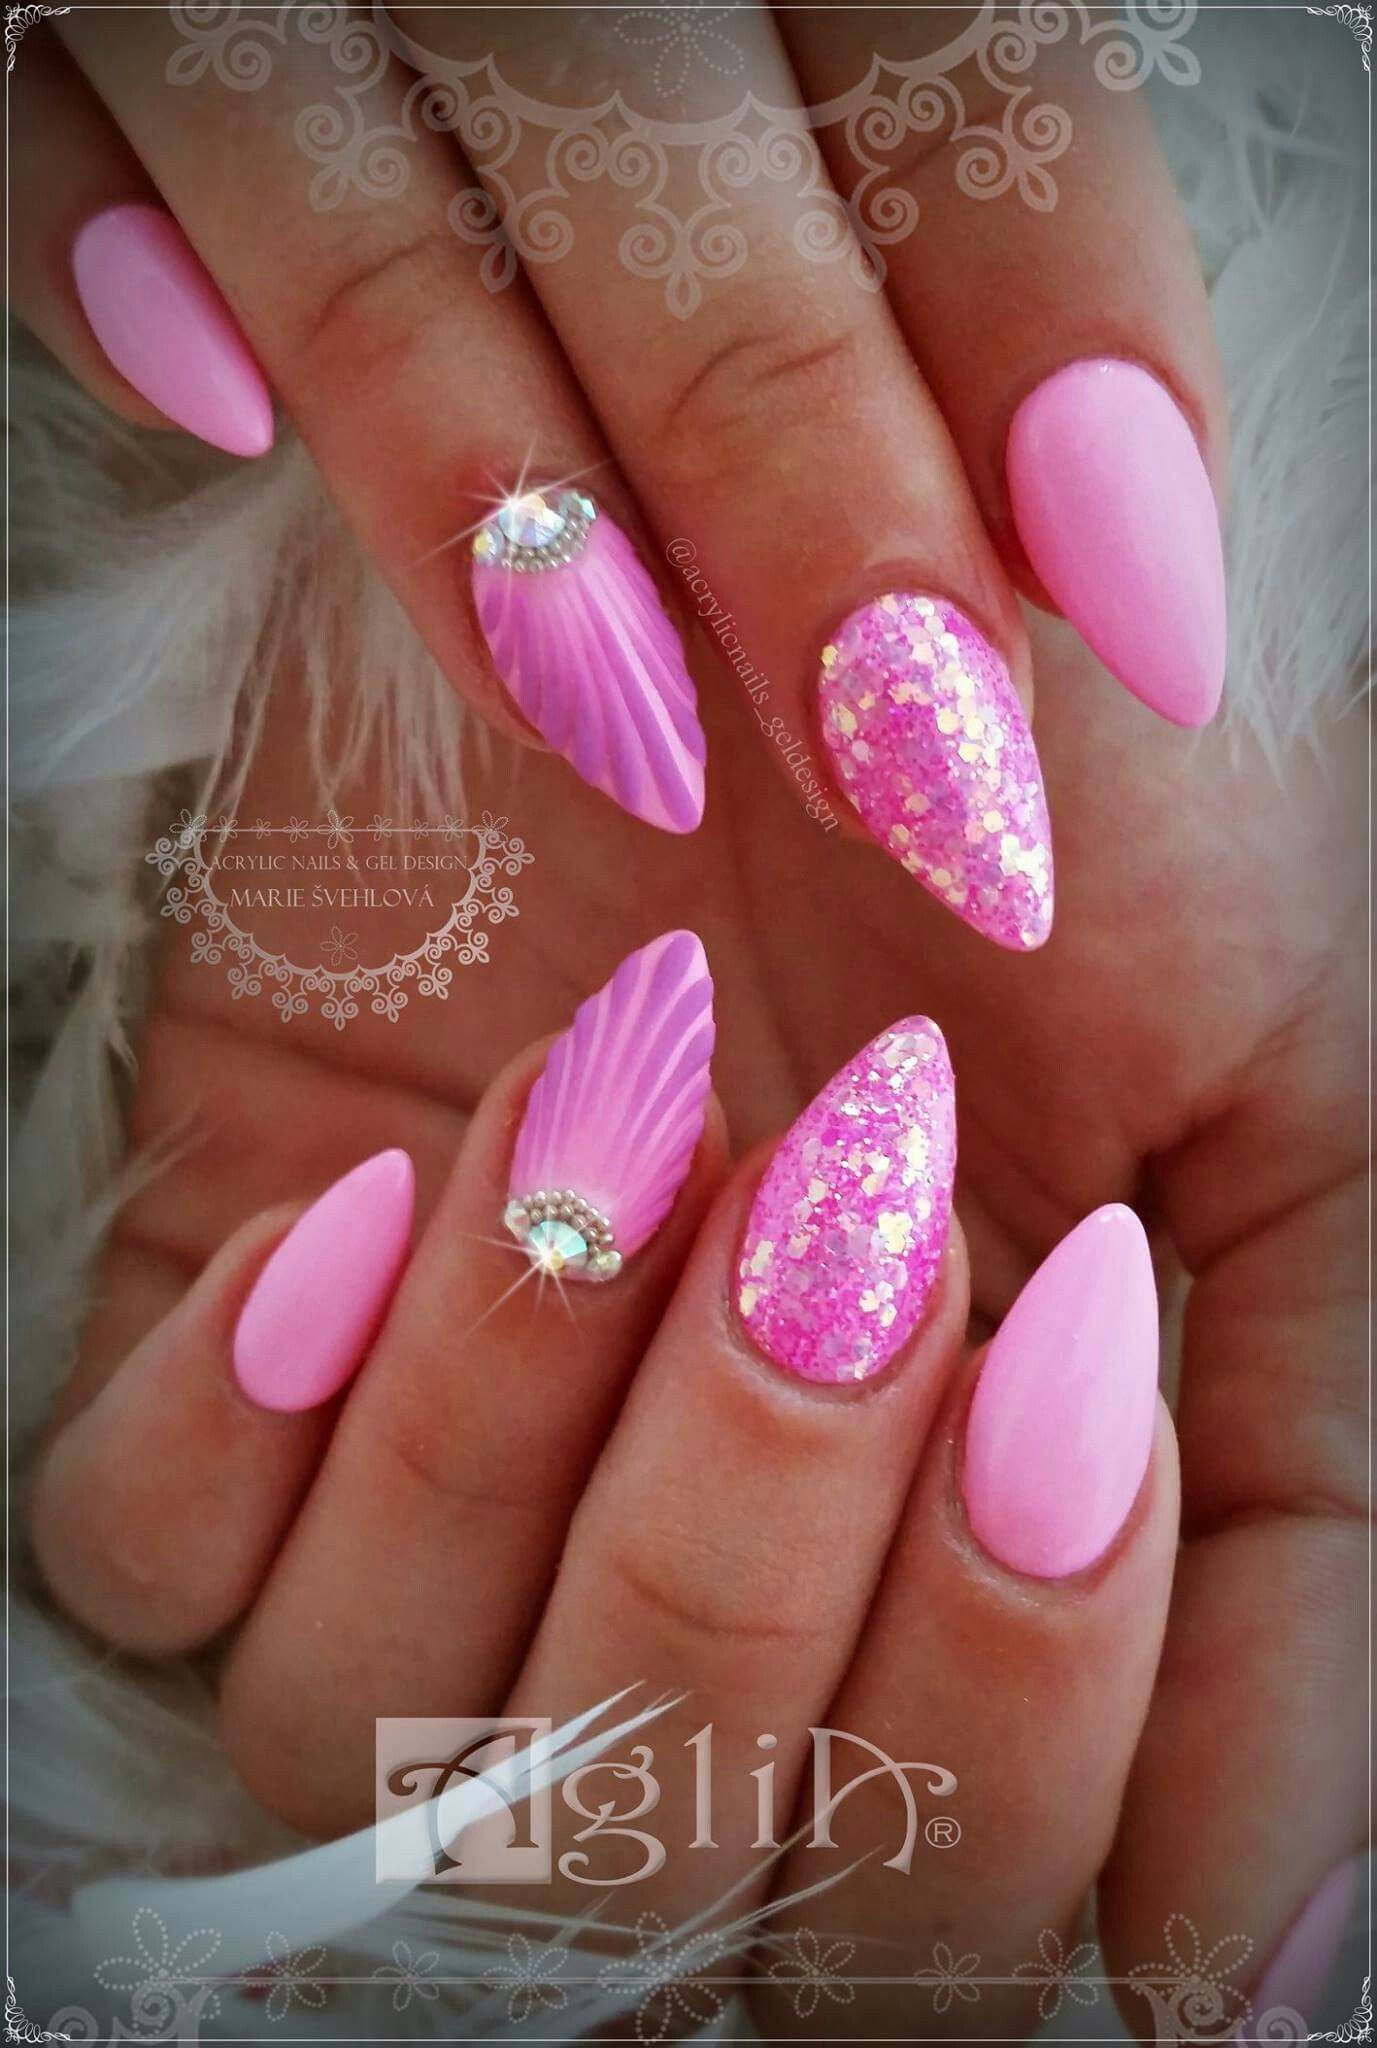 Acrylic Nails Gel Design Pink Nails Shell Nail Design With Images Gelove Nehty Nehty Ruzove Nehty